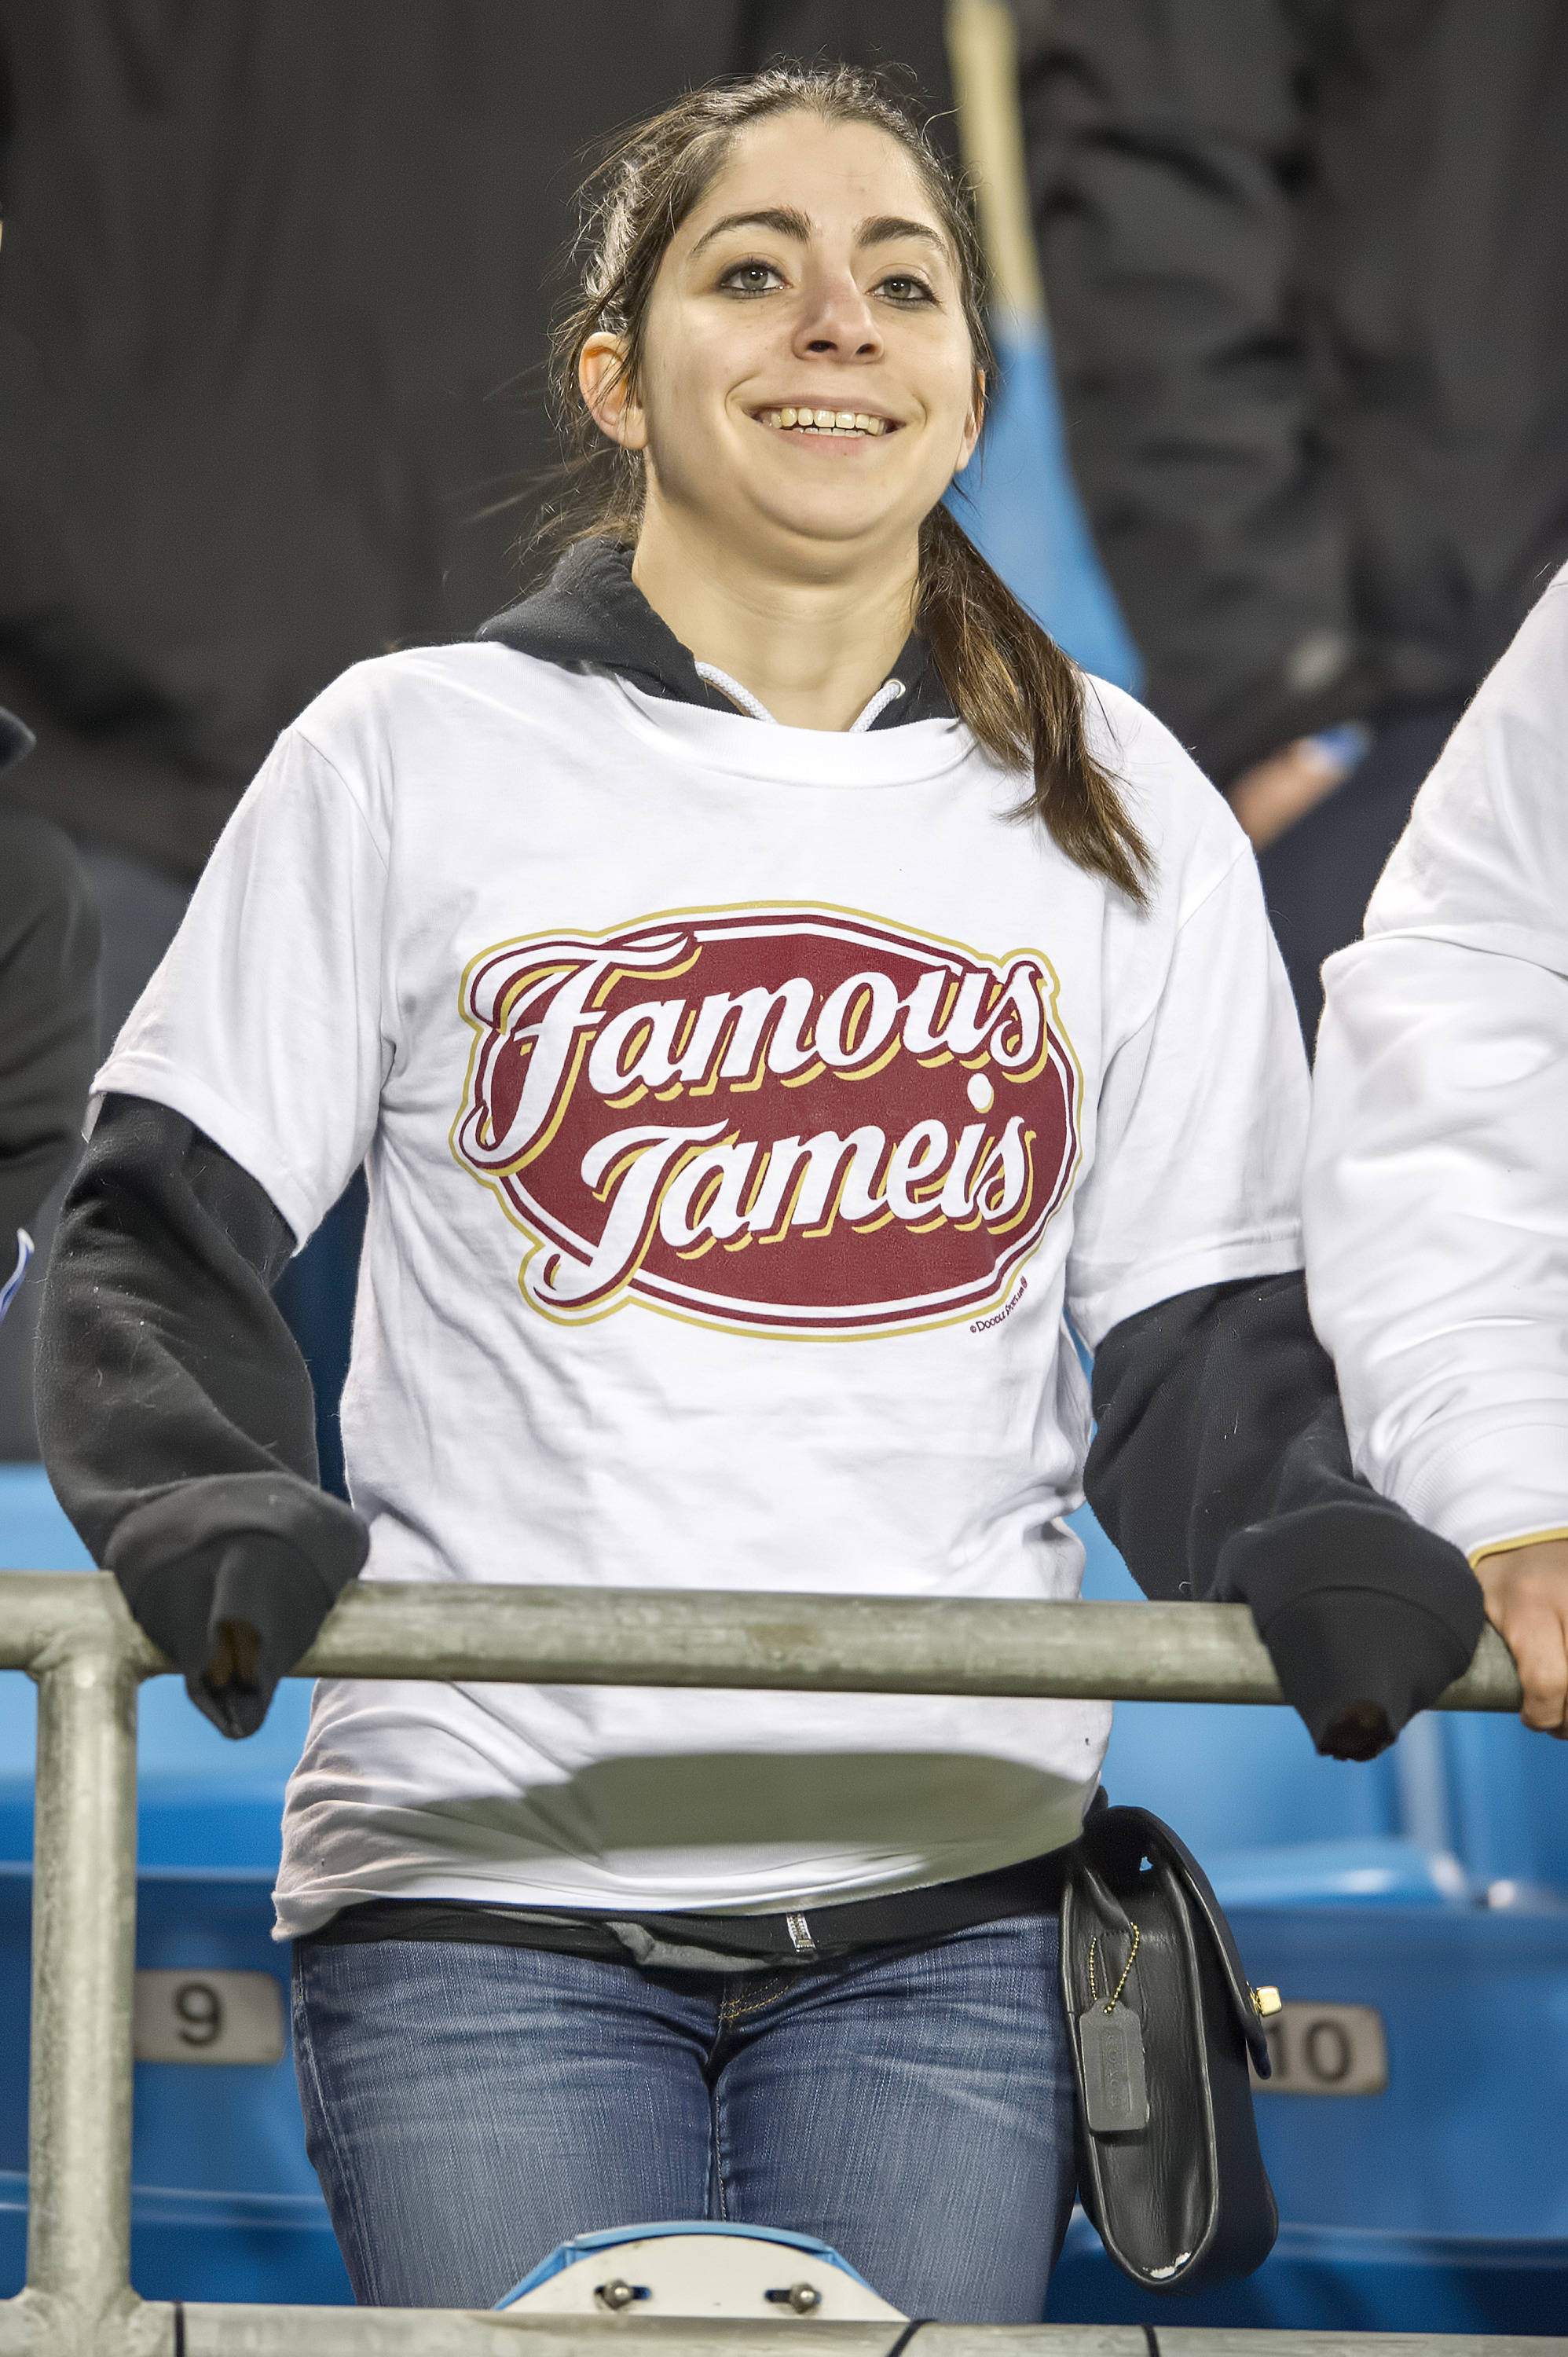 A Seminole Jameis Winston fan